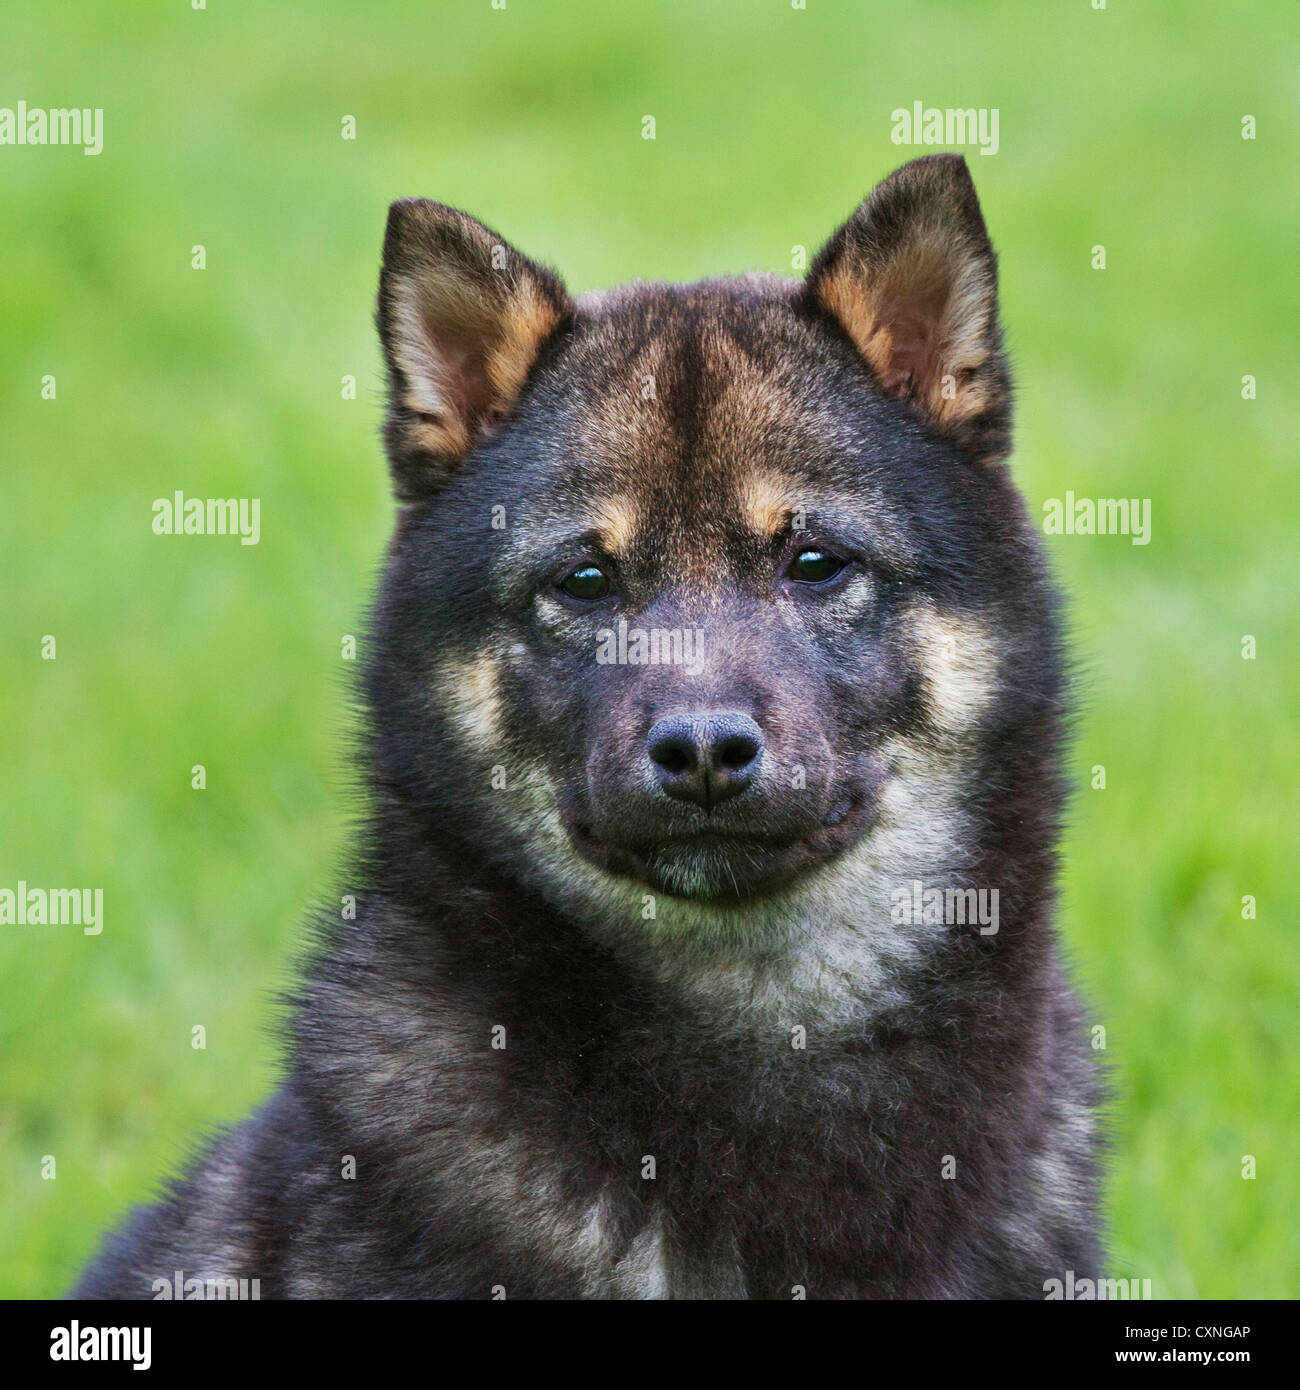 Shiba Inu / Shiba Ken (Canis lupus familiaris) Japanese dog breed in garden - Stock Image